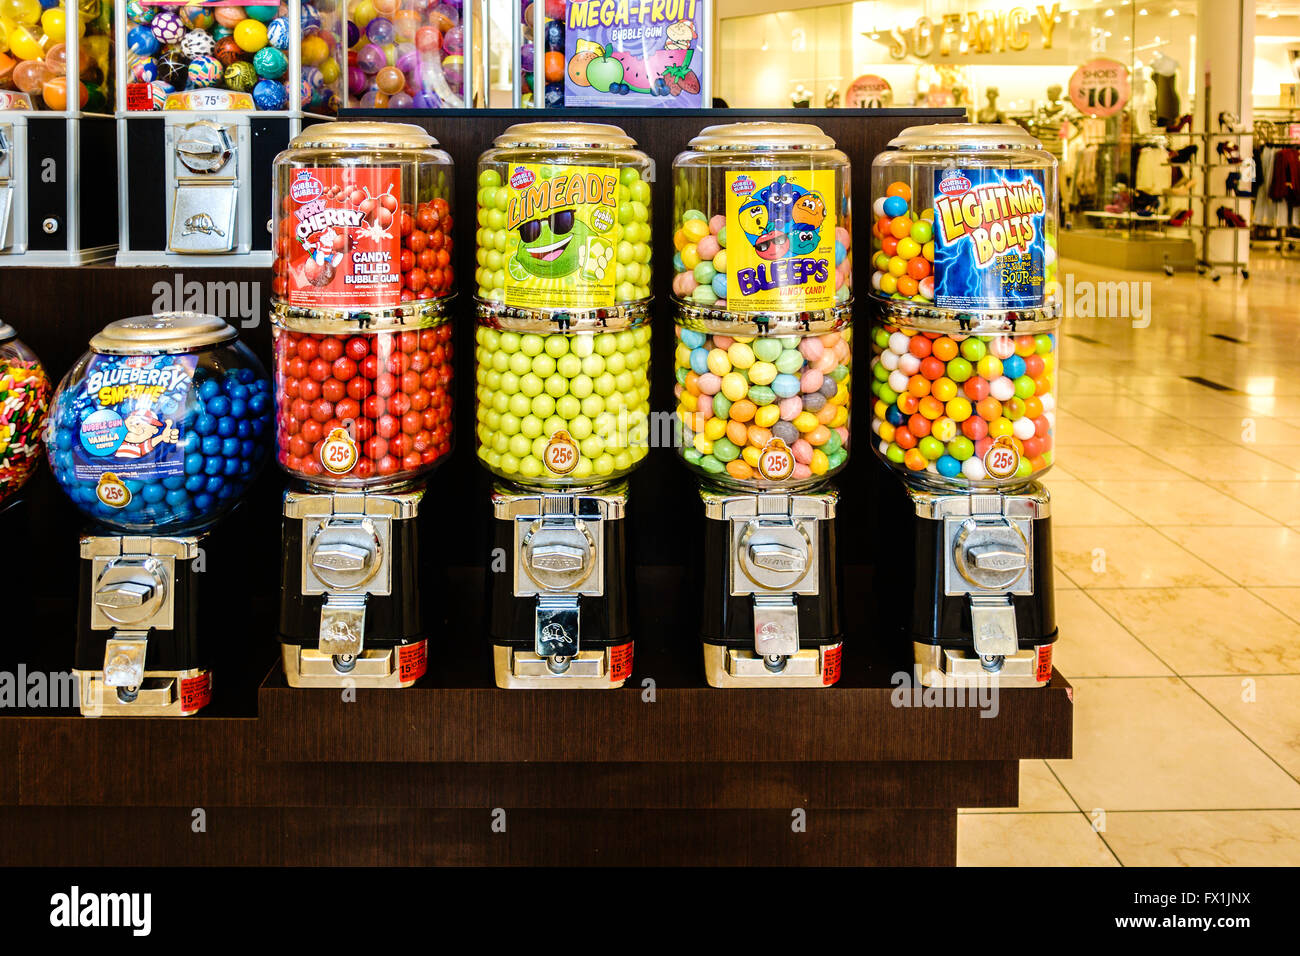 Round Candies And Bubblegum In Coin Operated Dispensers In